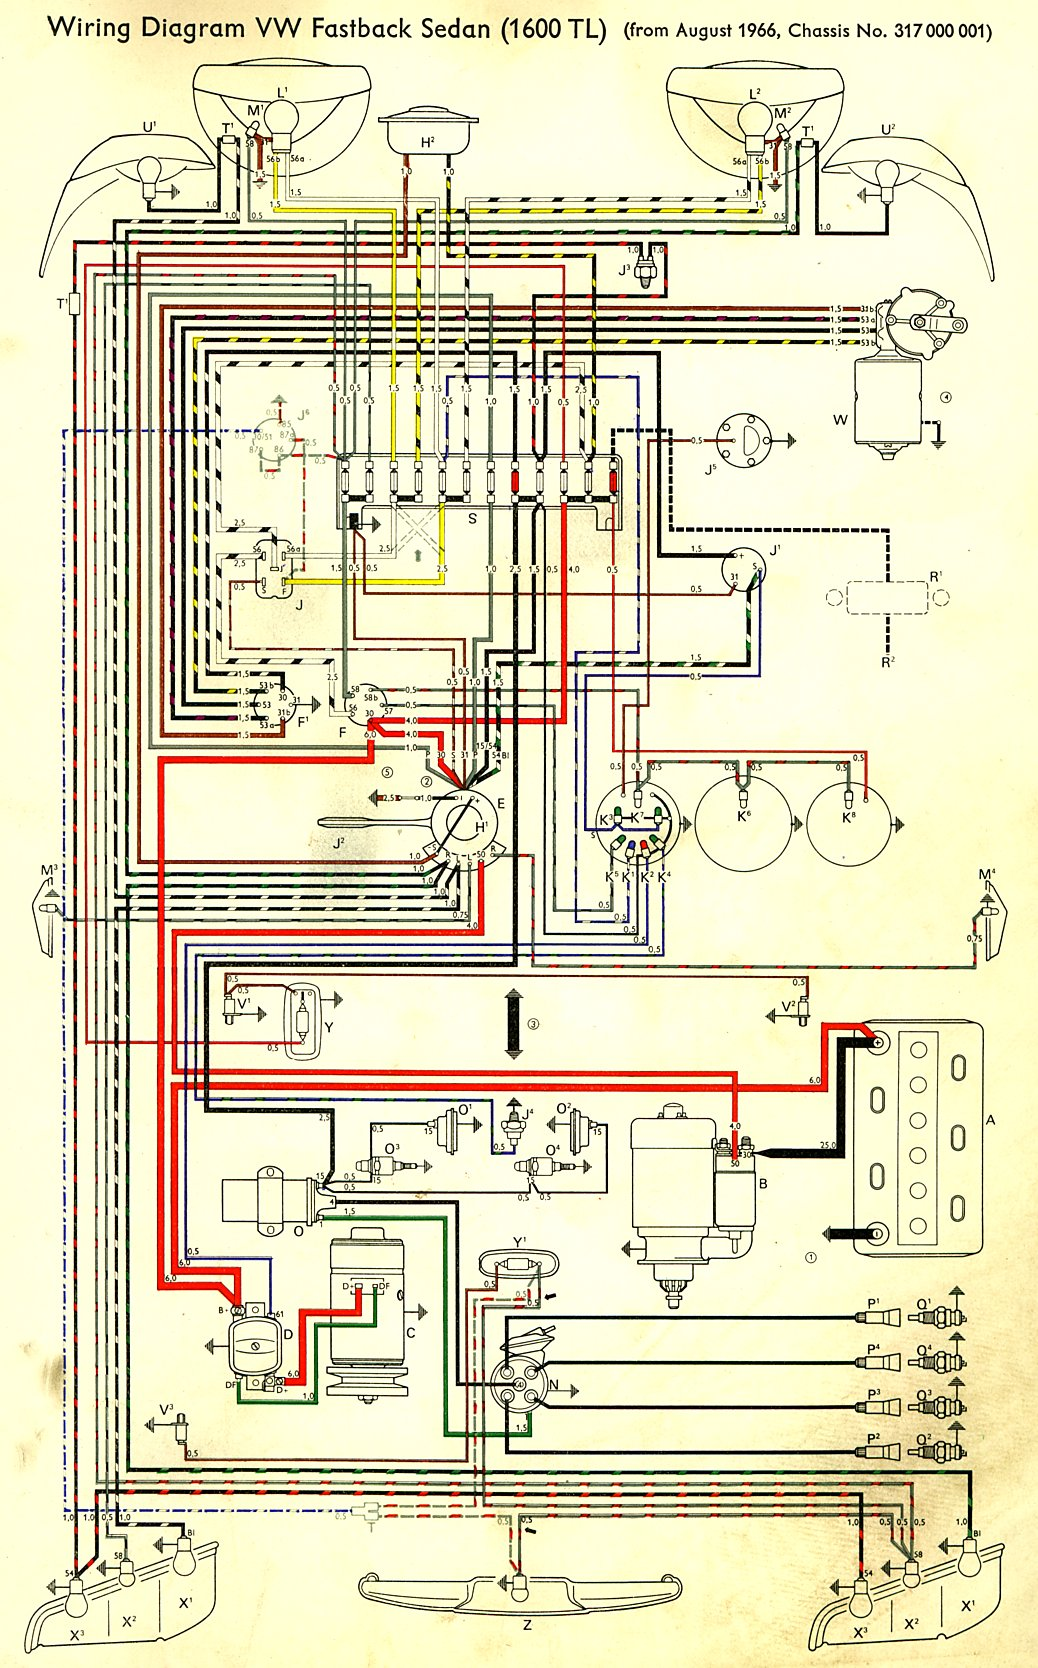 1964 Vw Alternator Wiring Reinvent Your Diagram 1990 Vanagon 67 Schematics Rh Enr Green Com Type 1 Connections